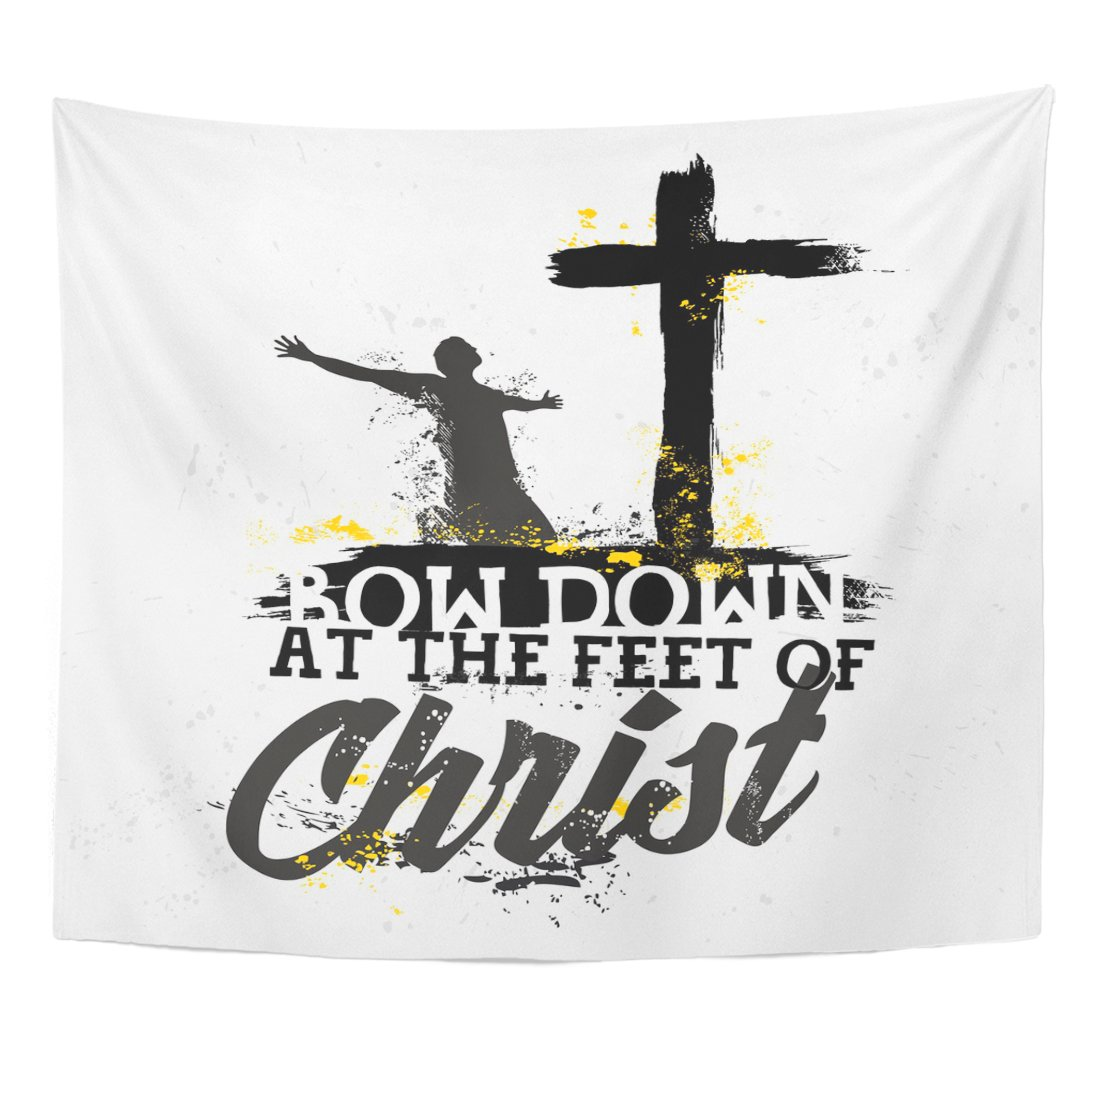 Breezat Tapestry Jesus Bible Lettering Christian Bow Down at the Feet of Christ Cross Home Decor Wall Hanging for Living Room Bedroom Dorm 50x60 Inches